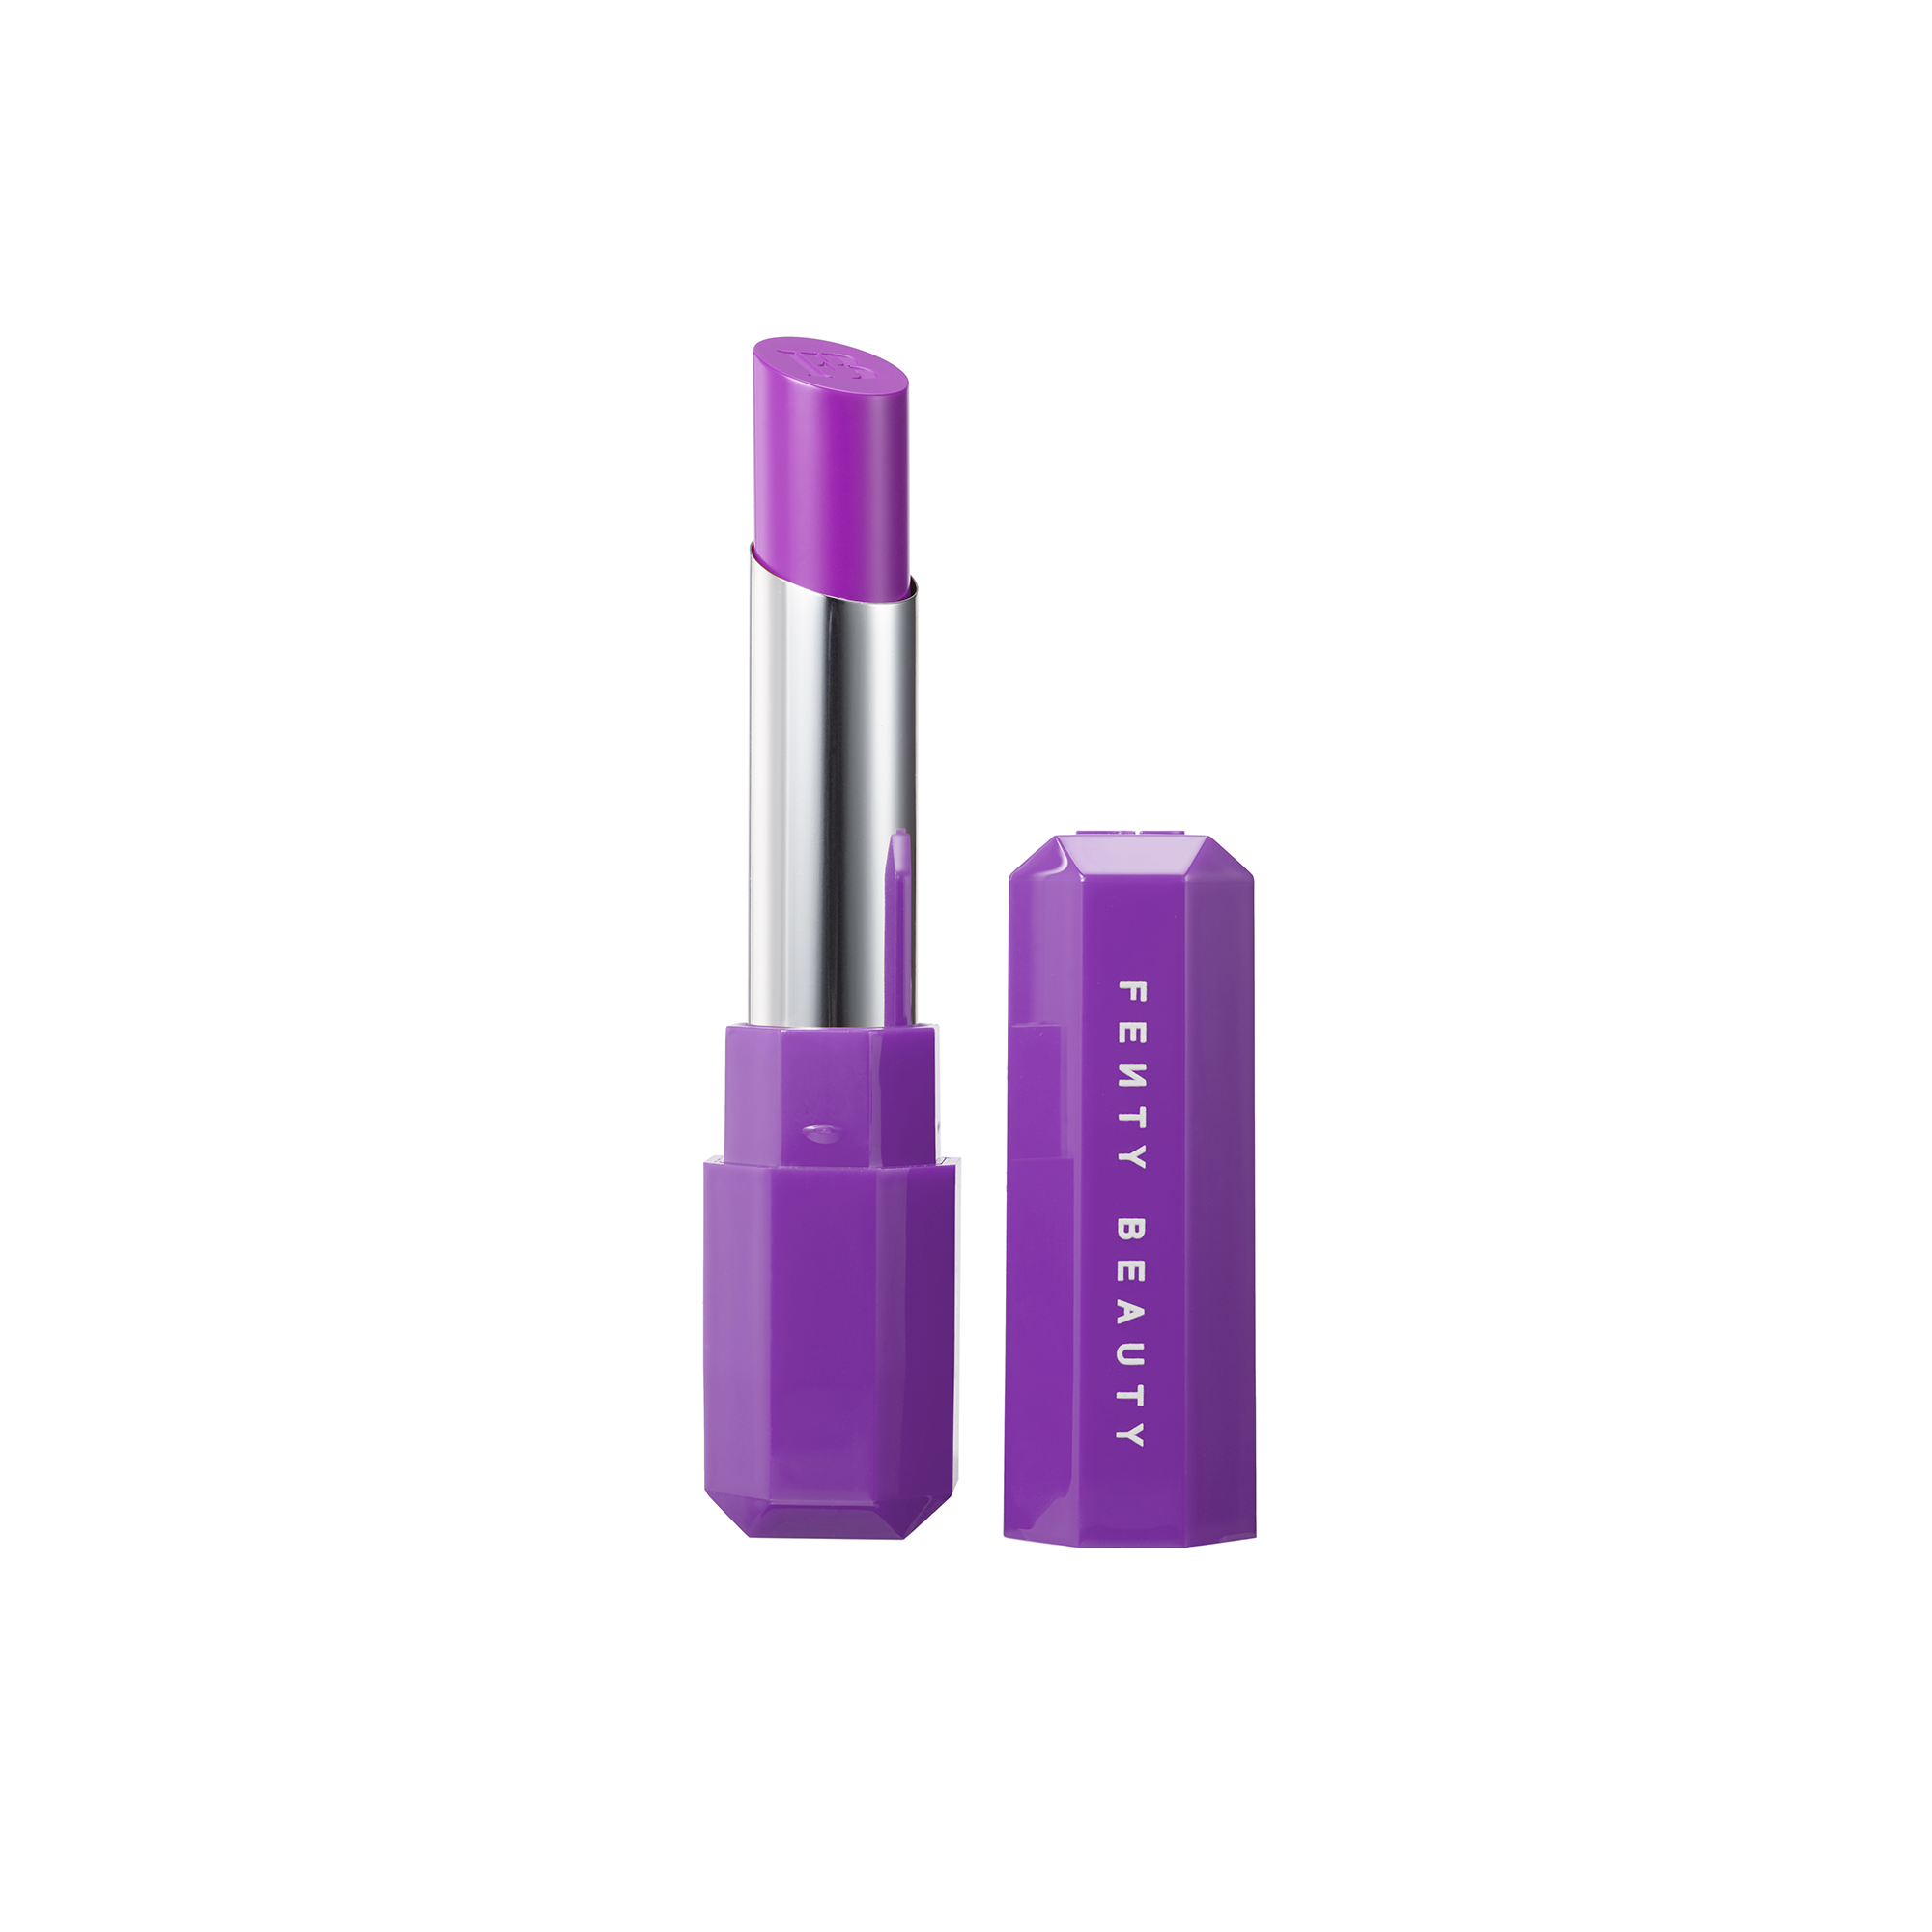 Poutsicle Juicy Satin Lipstick in Purpsicle, $32